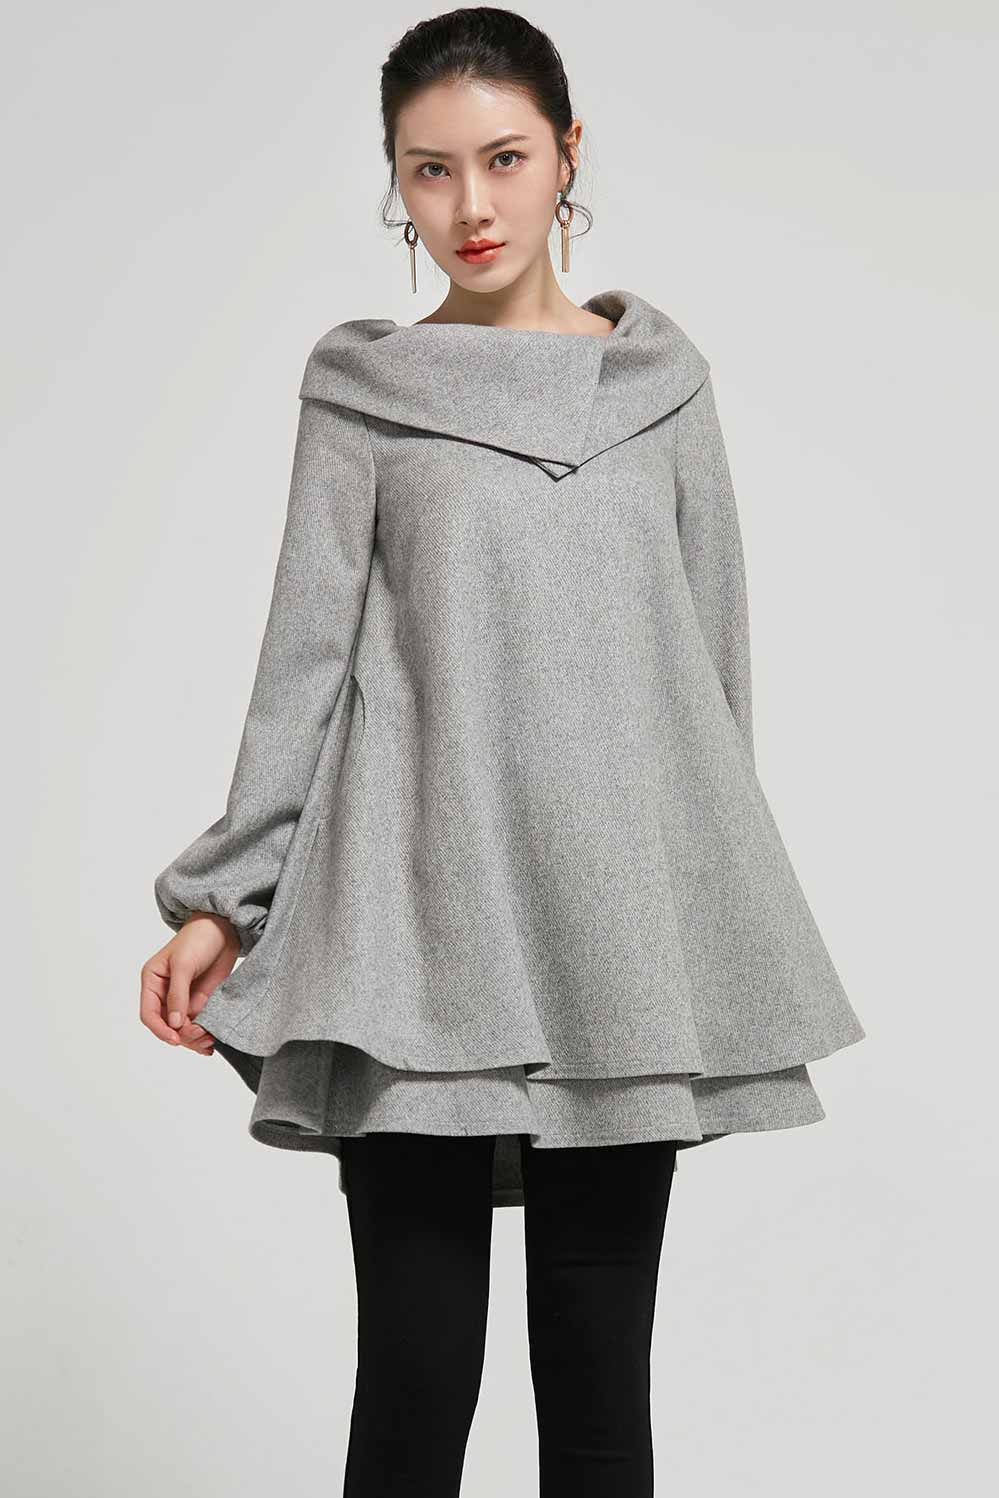 wome's  wool tuic dress in grey 2310#